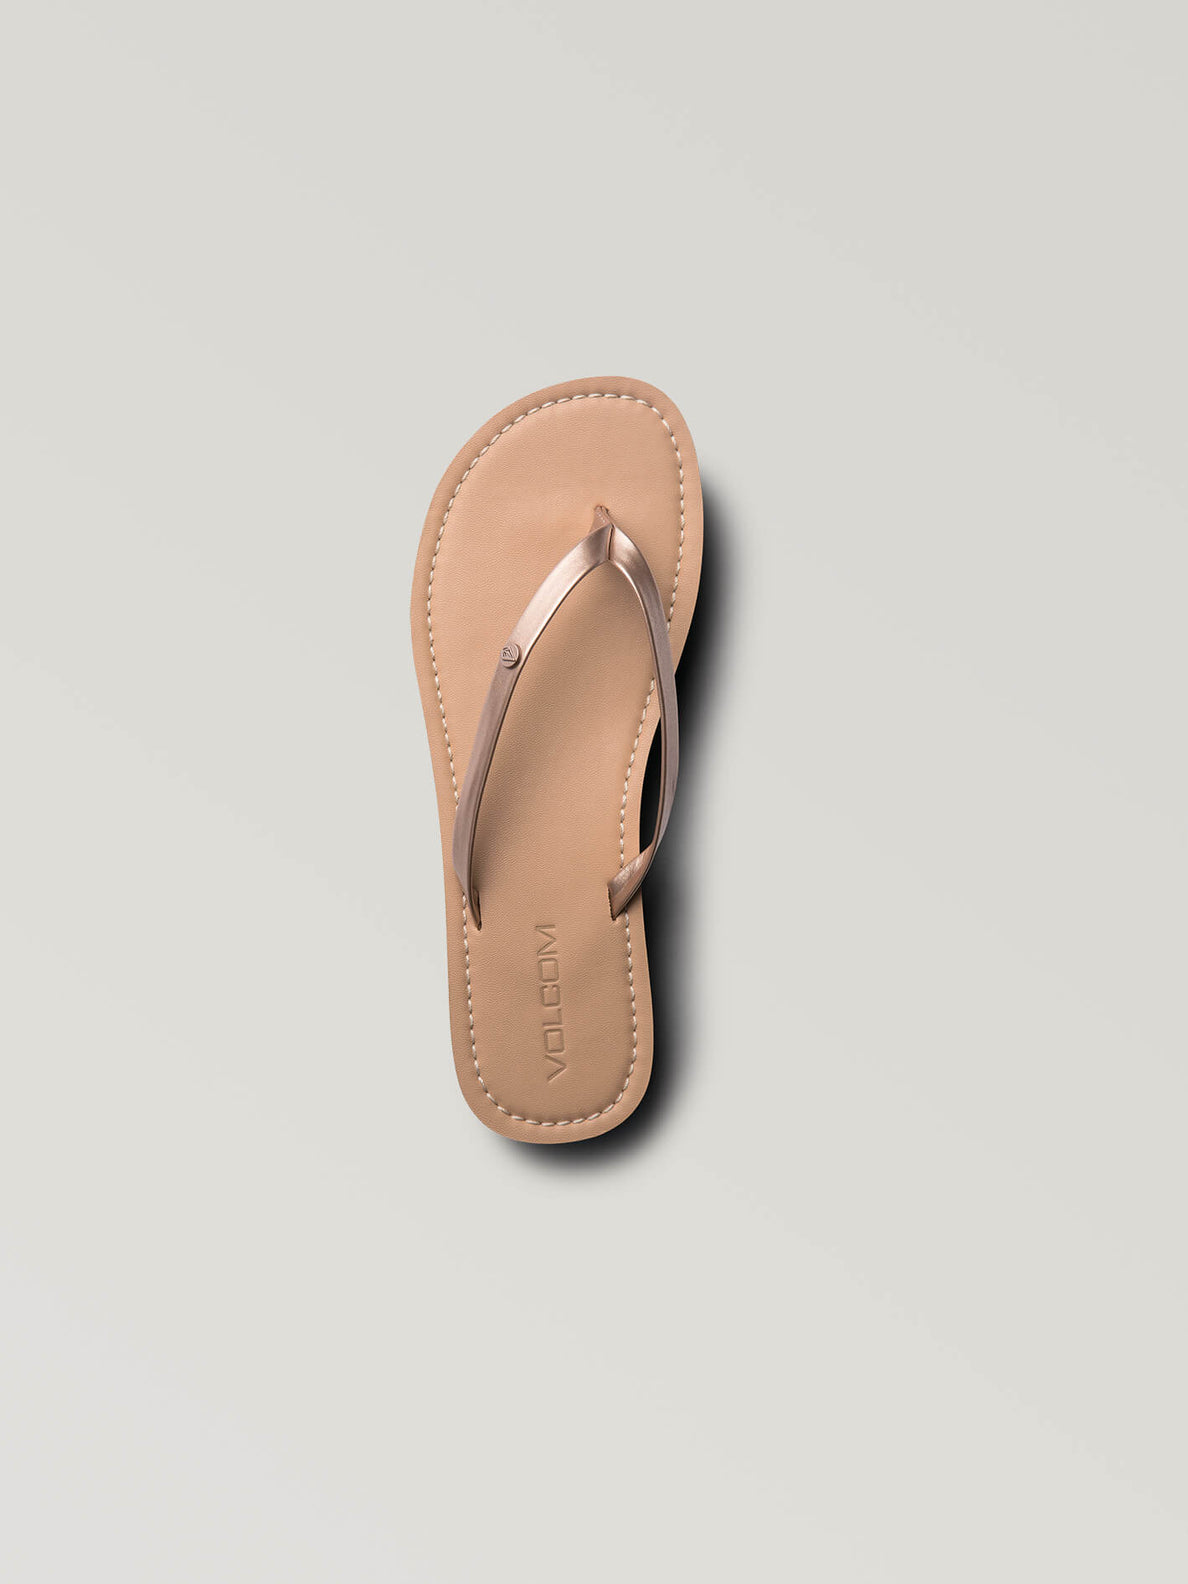 Lagos Sandals In Rose Gold, Alternate View